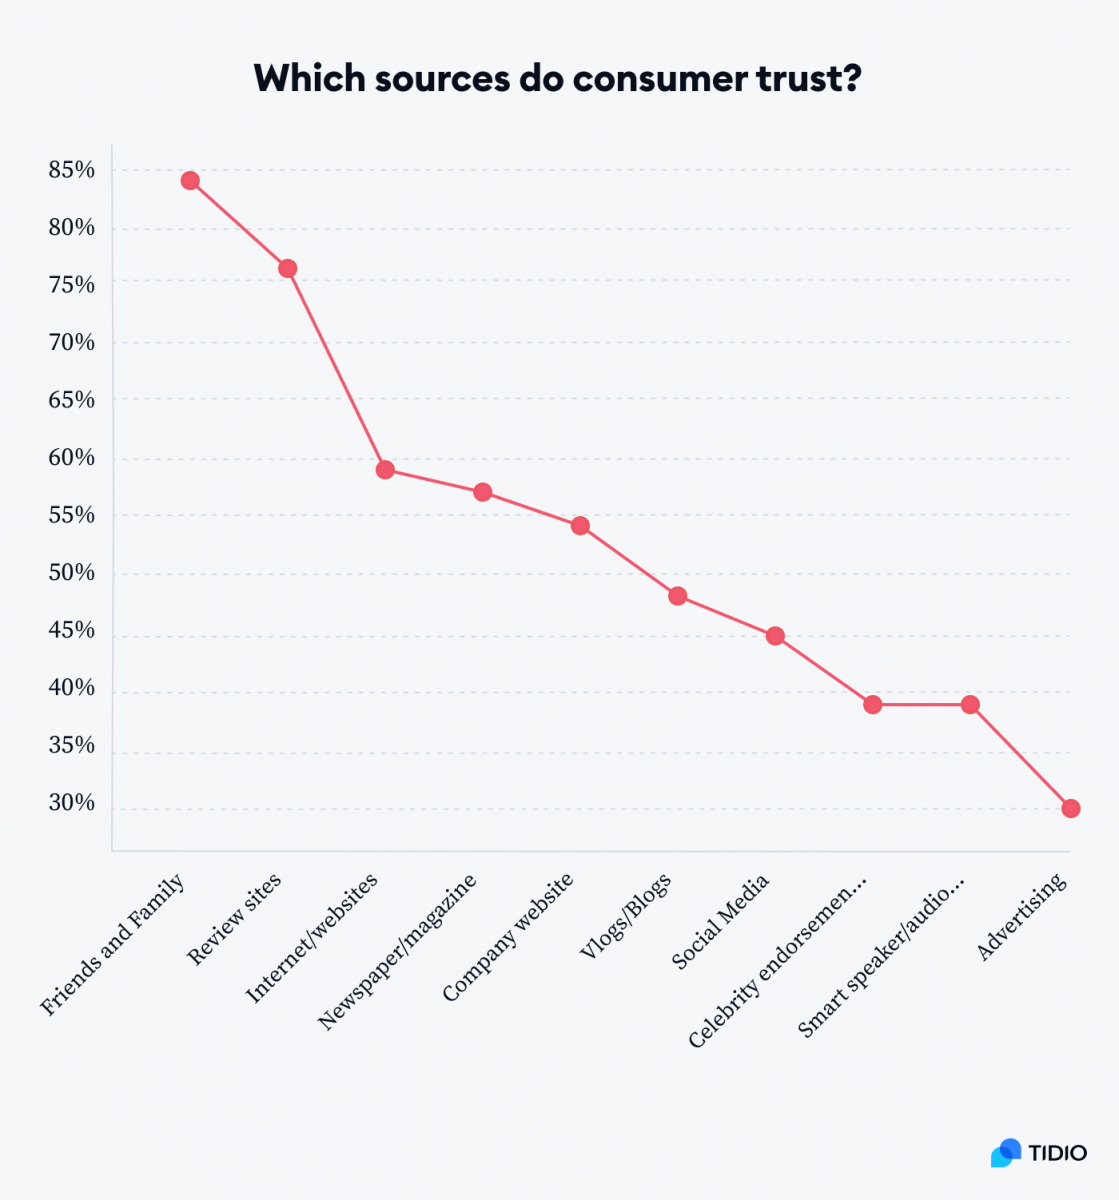 A graph showing which sources do customer trust by percentage